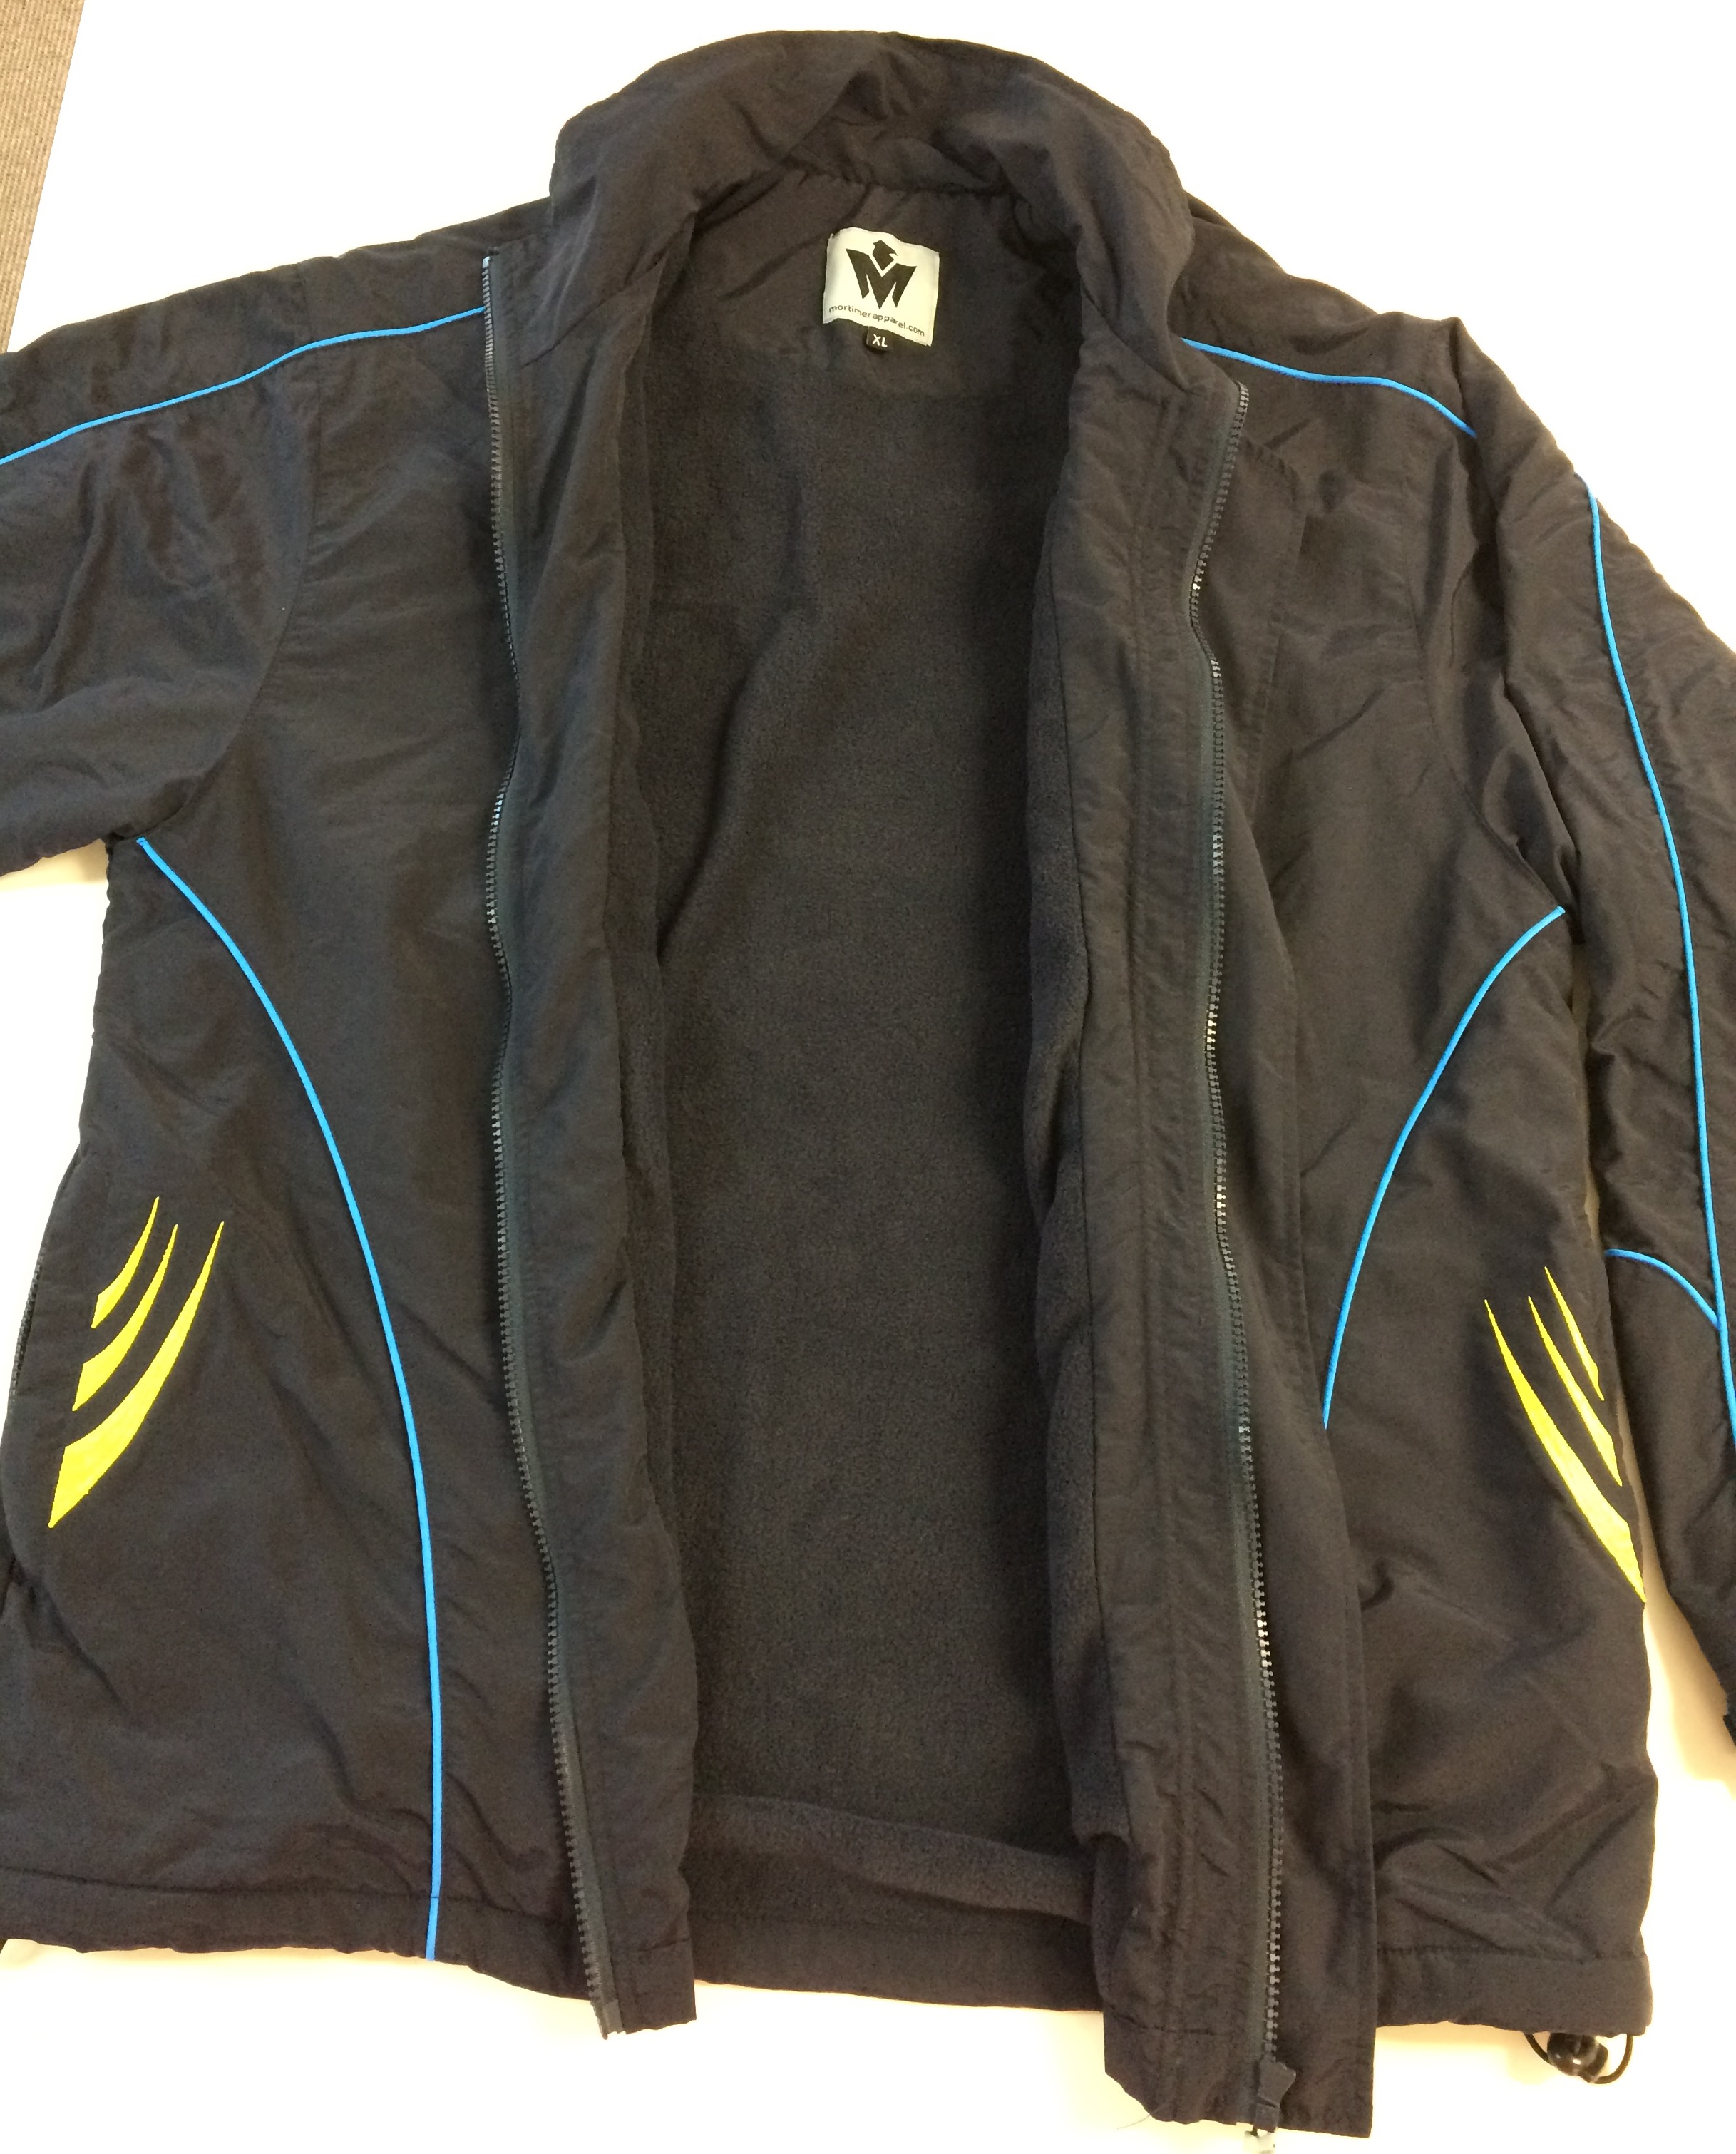 South Coast all weather tracksuit jacket front 2